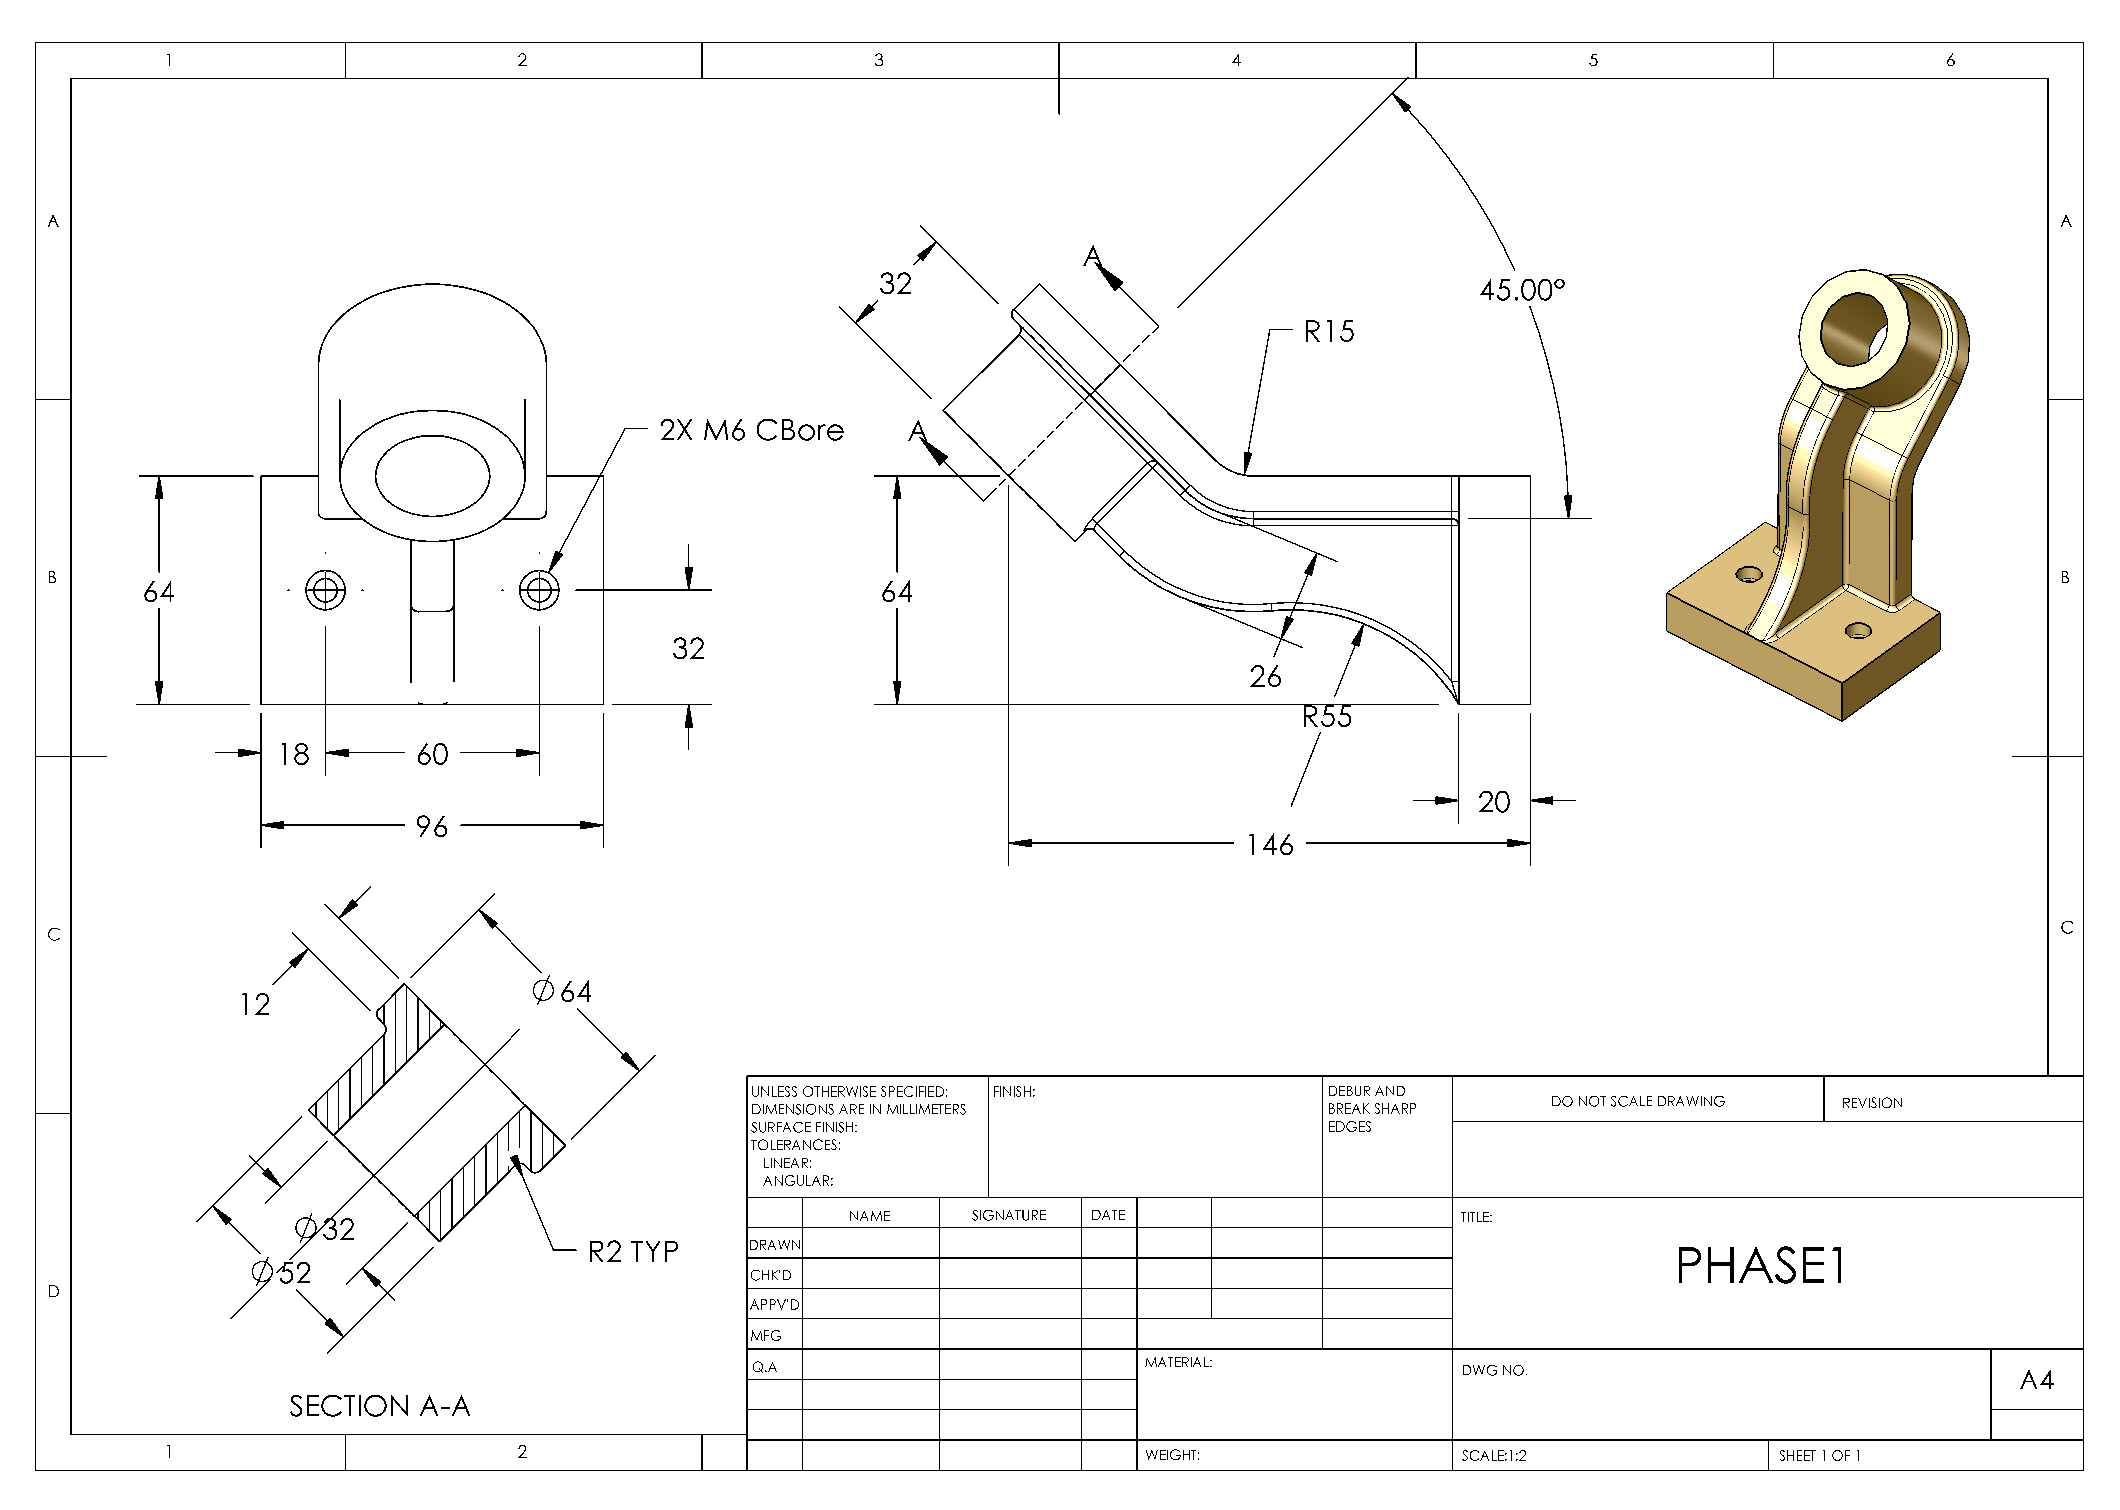 square tool post assembly drawing pdf